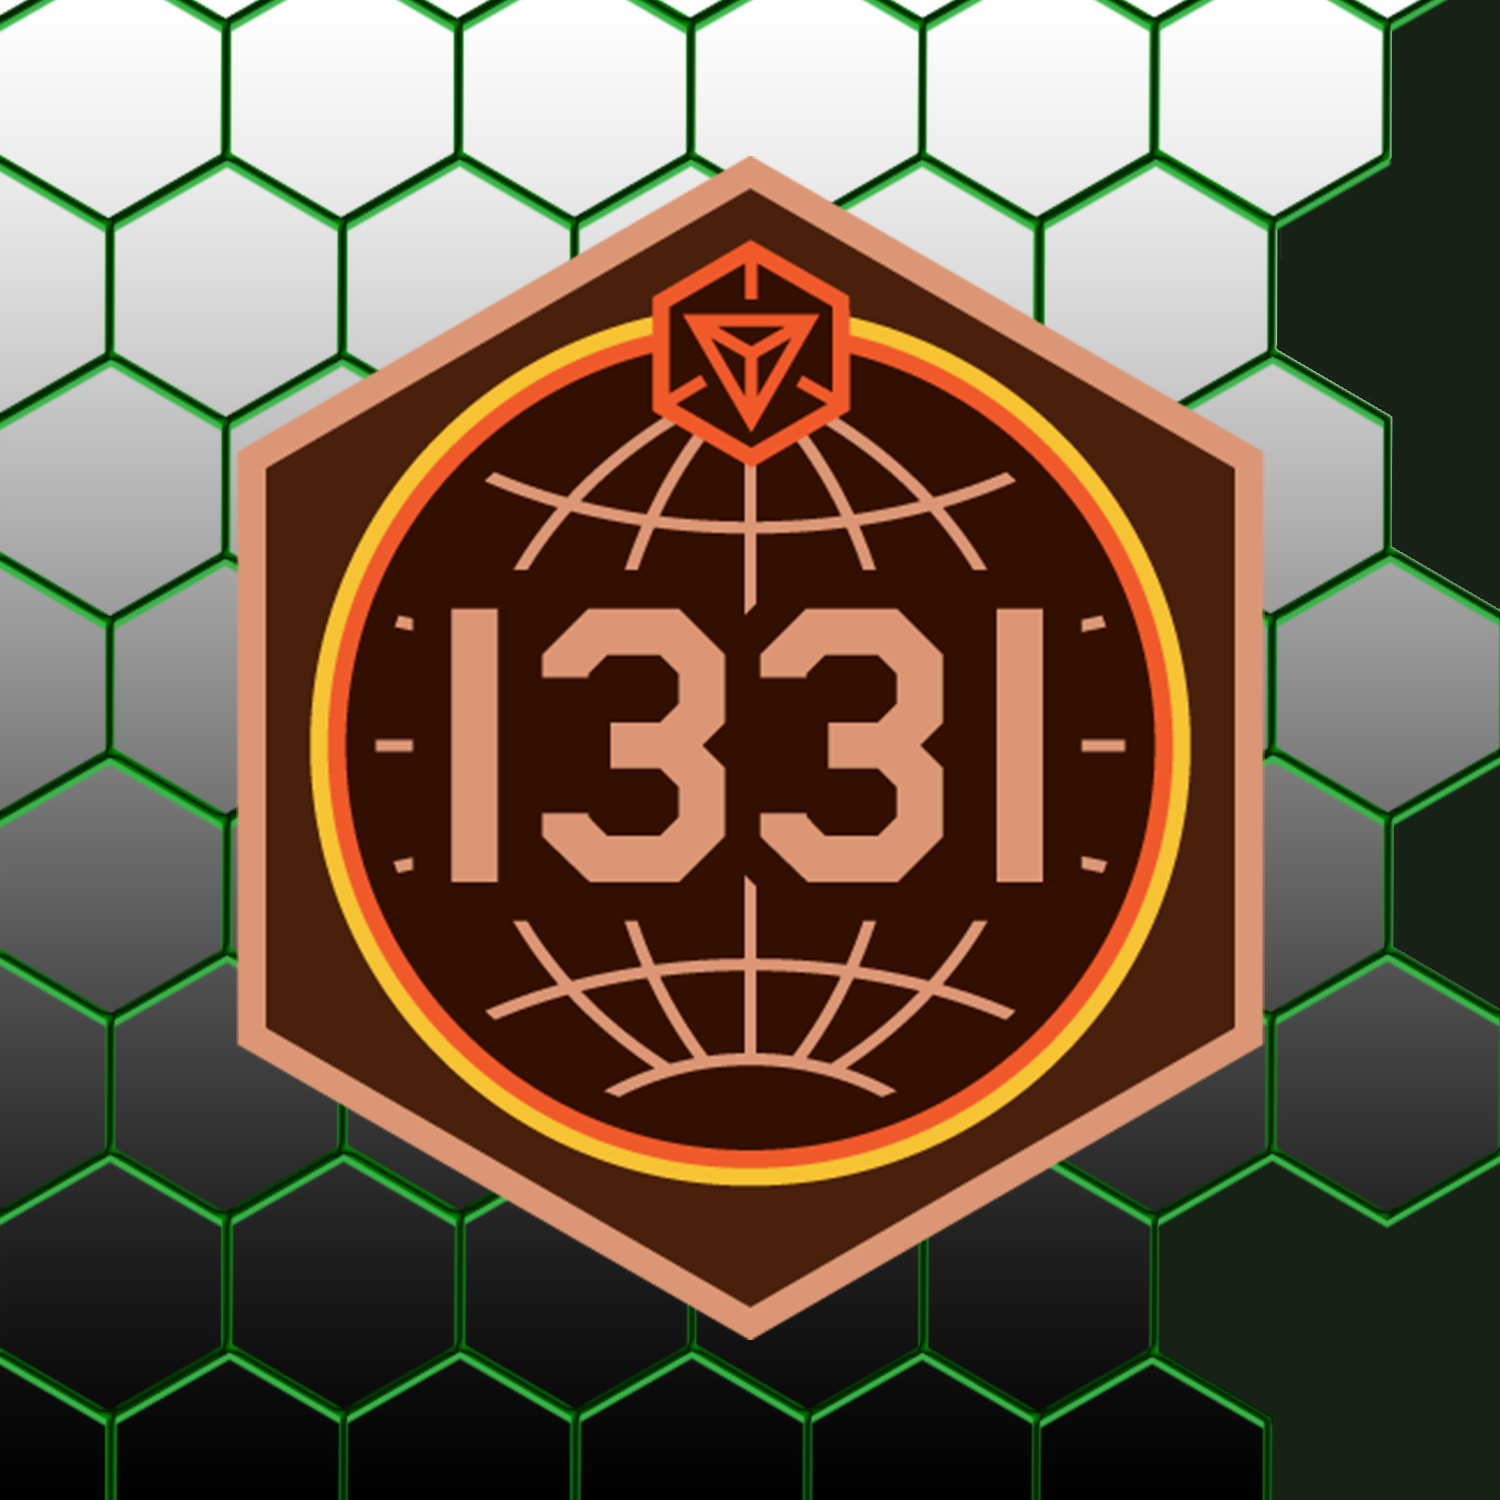 NL-1331 - Meet-up and support the NL-1331X's XM research program. Your anomaly ticket will serve as your to gateway to the exotic matter of this unique experience.